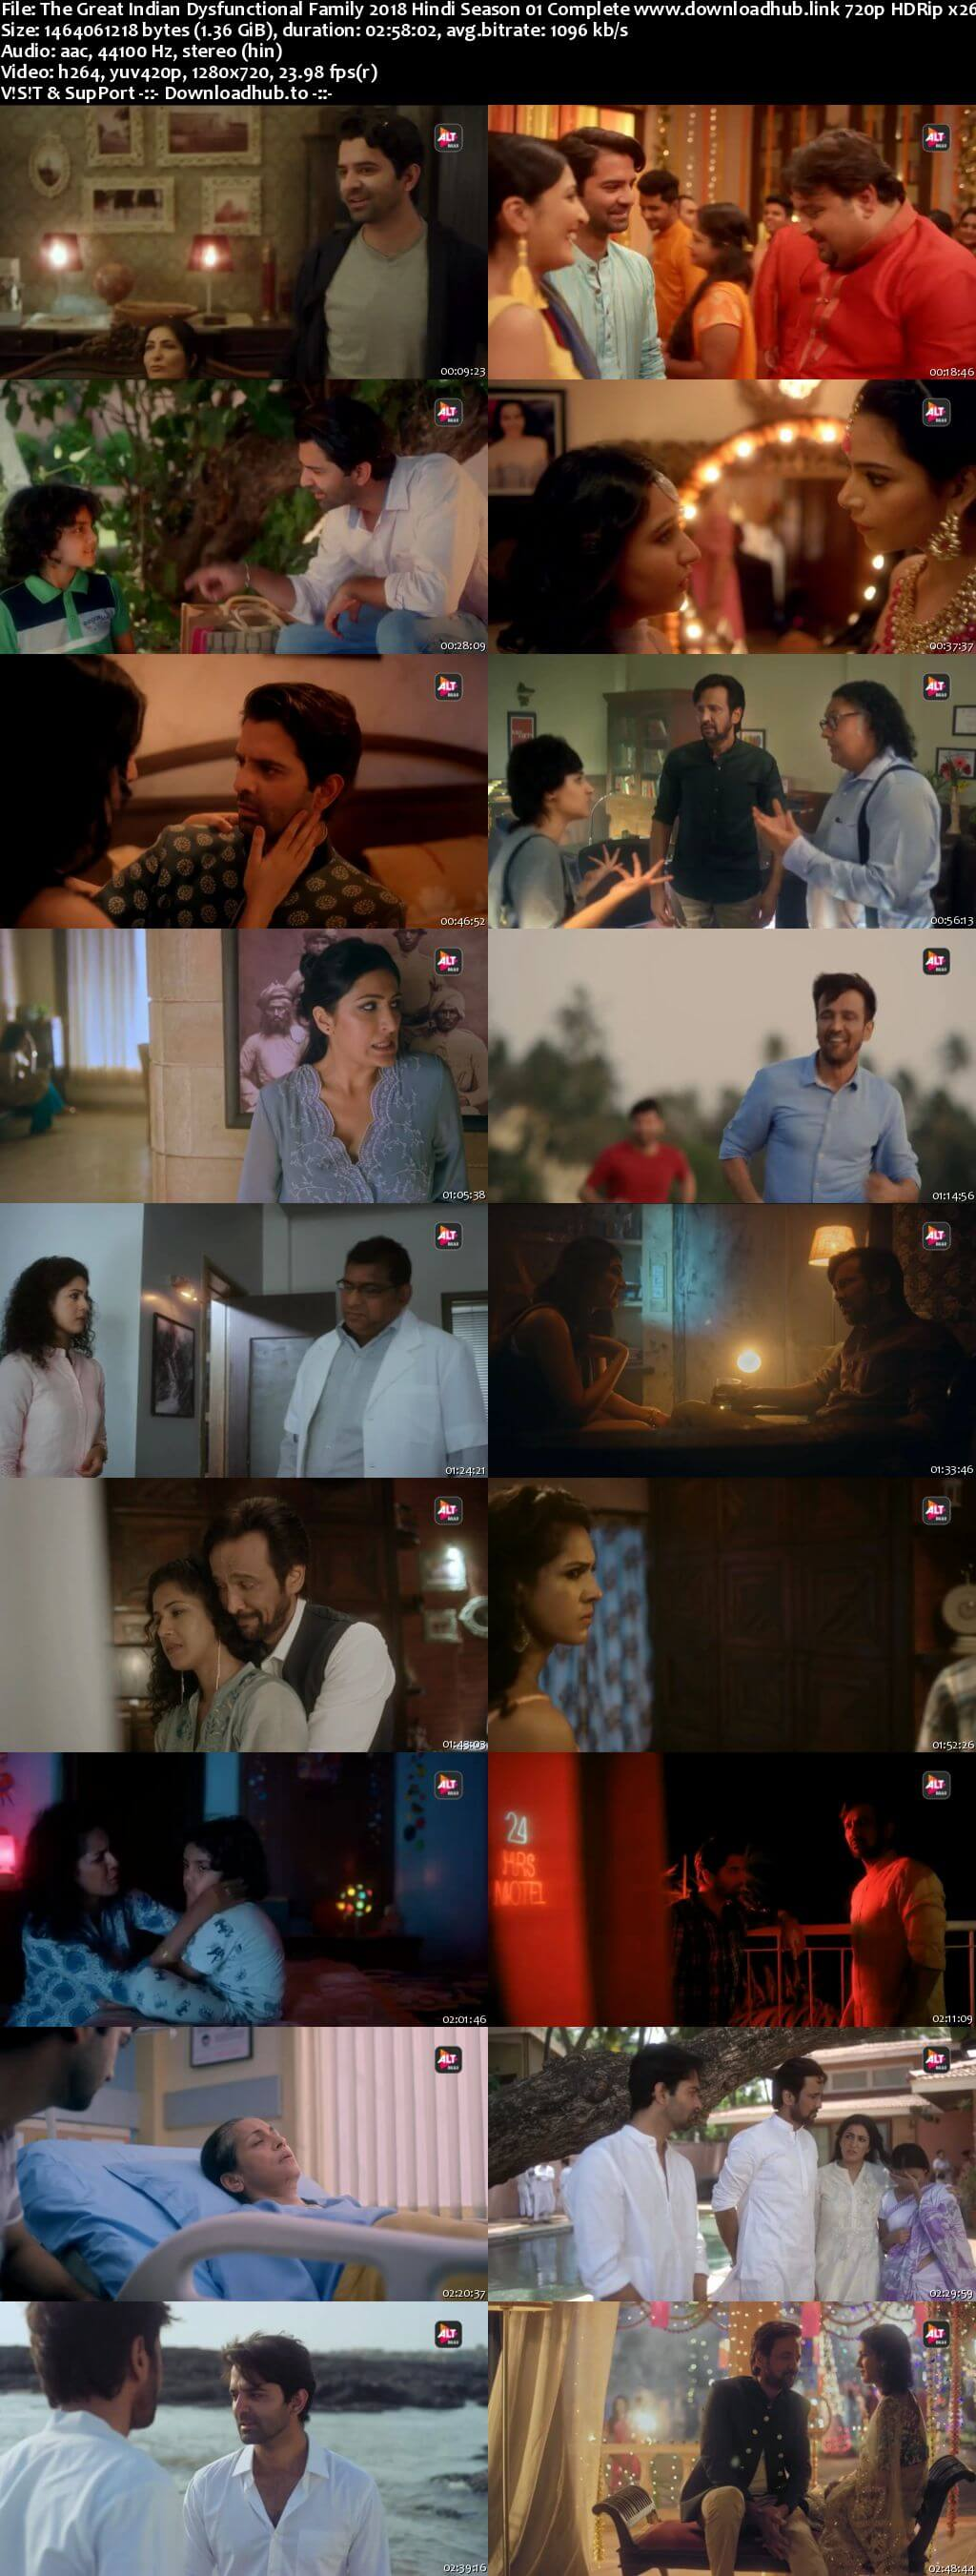 The Great Indian Dysfunctional Family 2018 Hindi Season 01 Complete 720p HDRip x264